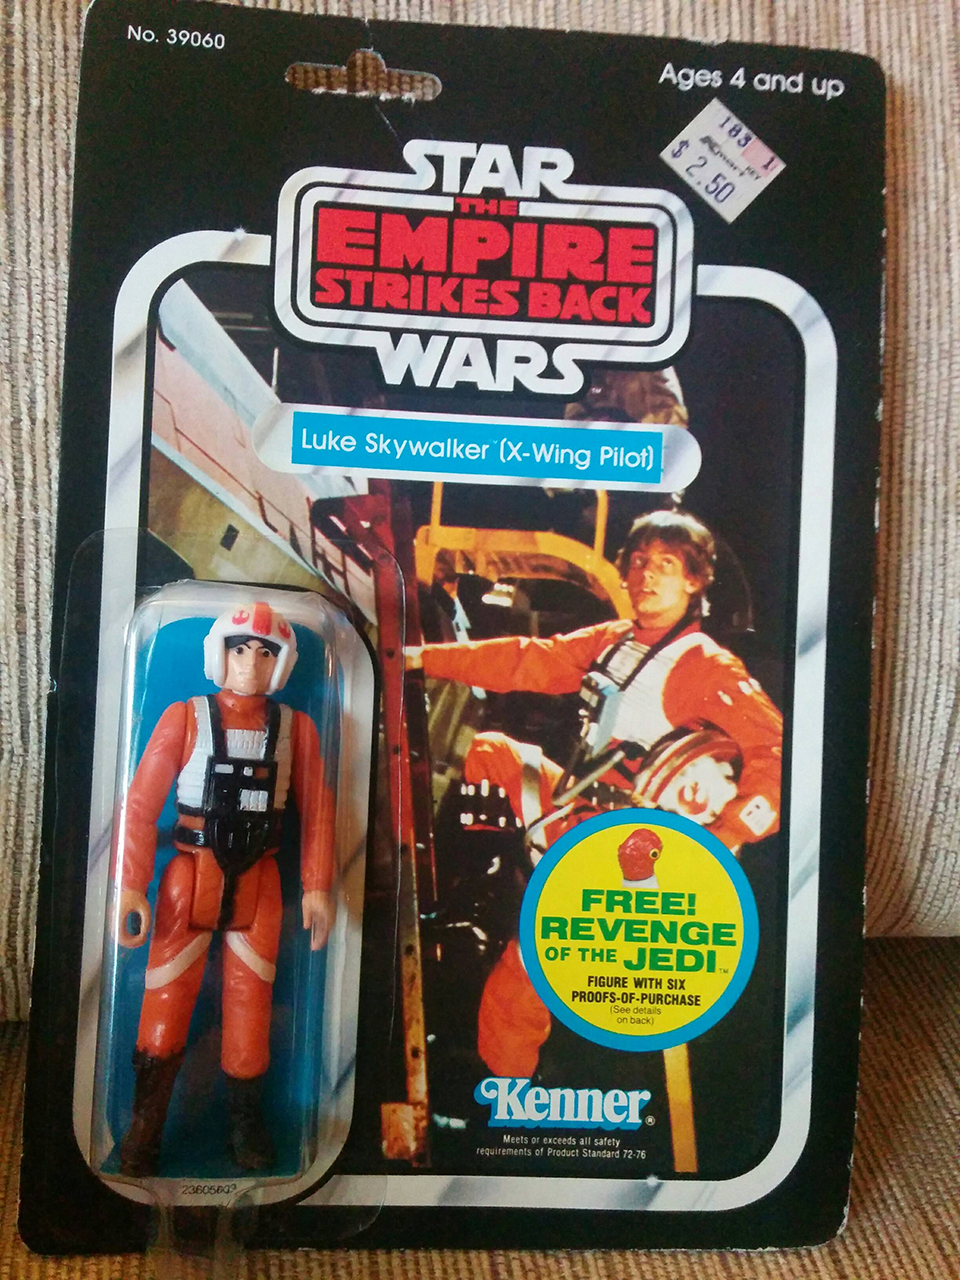 Kenner Star Wars Toys : Star wars kenner action figure gift given three decades